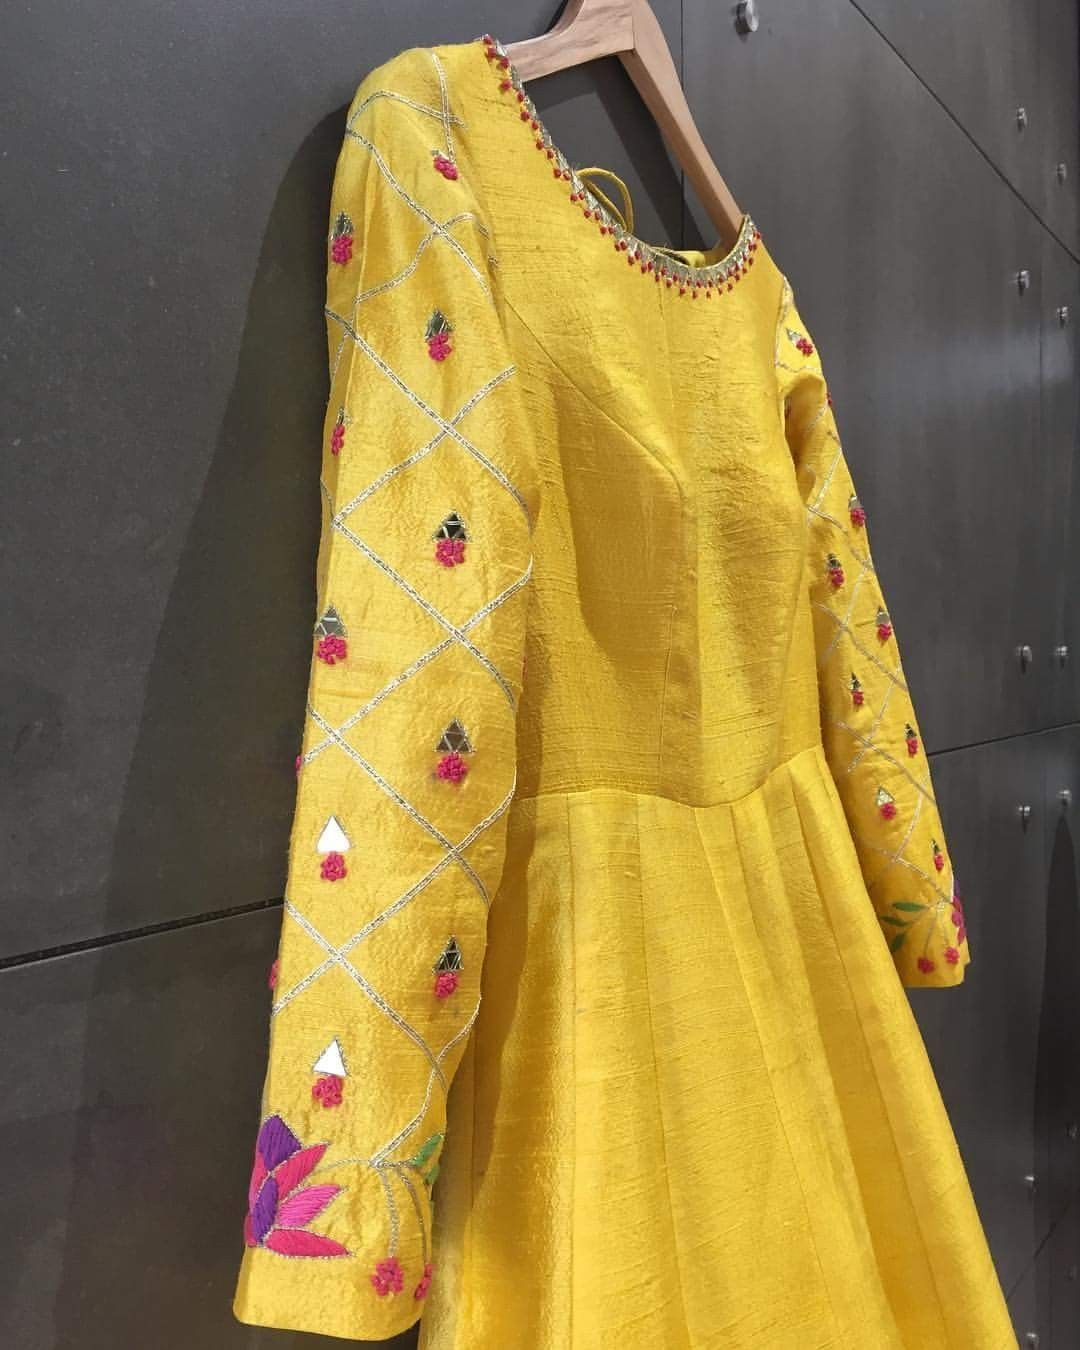 Pin By Ayu Sari On Ruchi Designs: Pin By Ruchi Khanna On Dressing Up Time In 2019